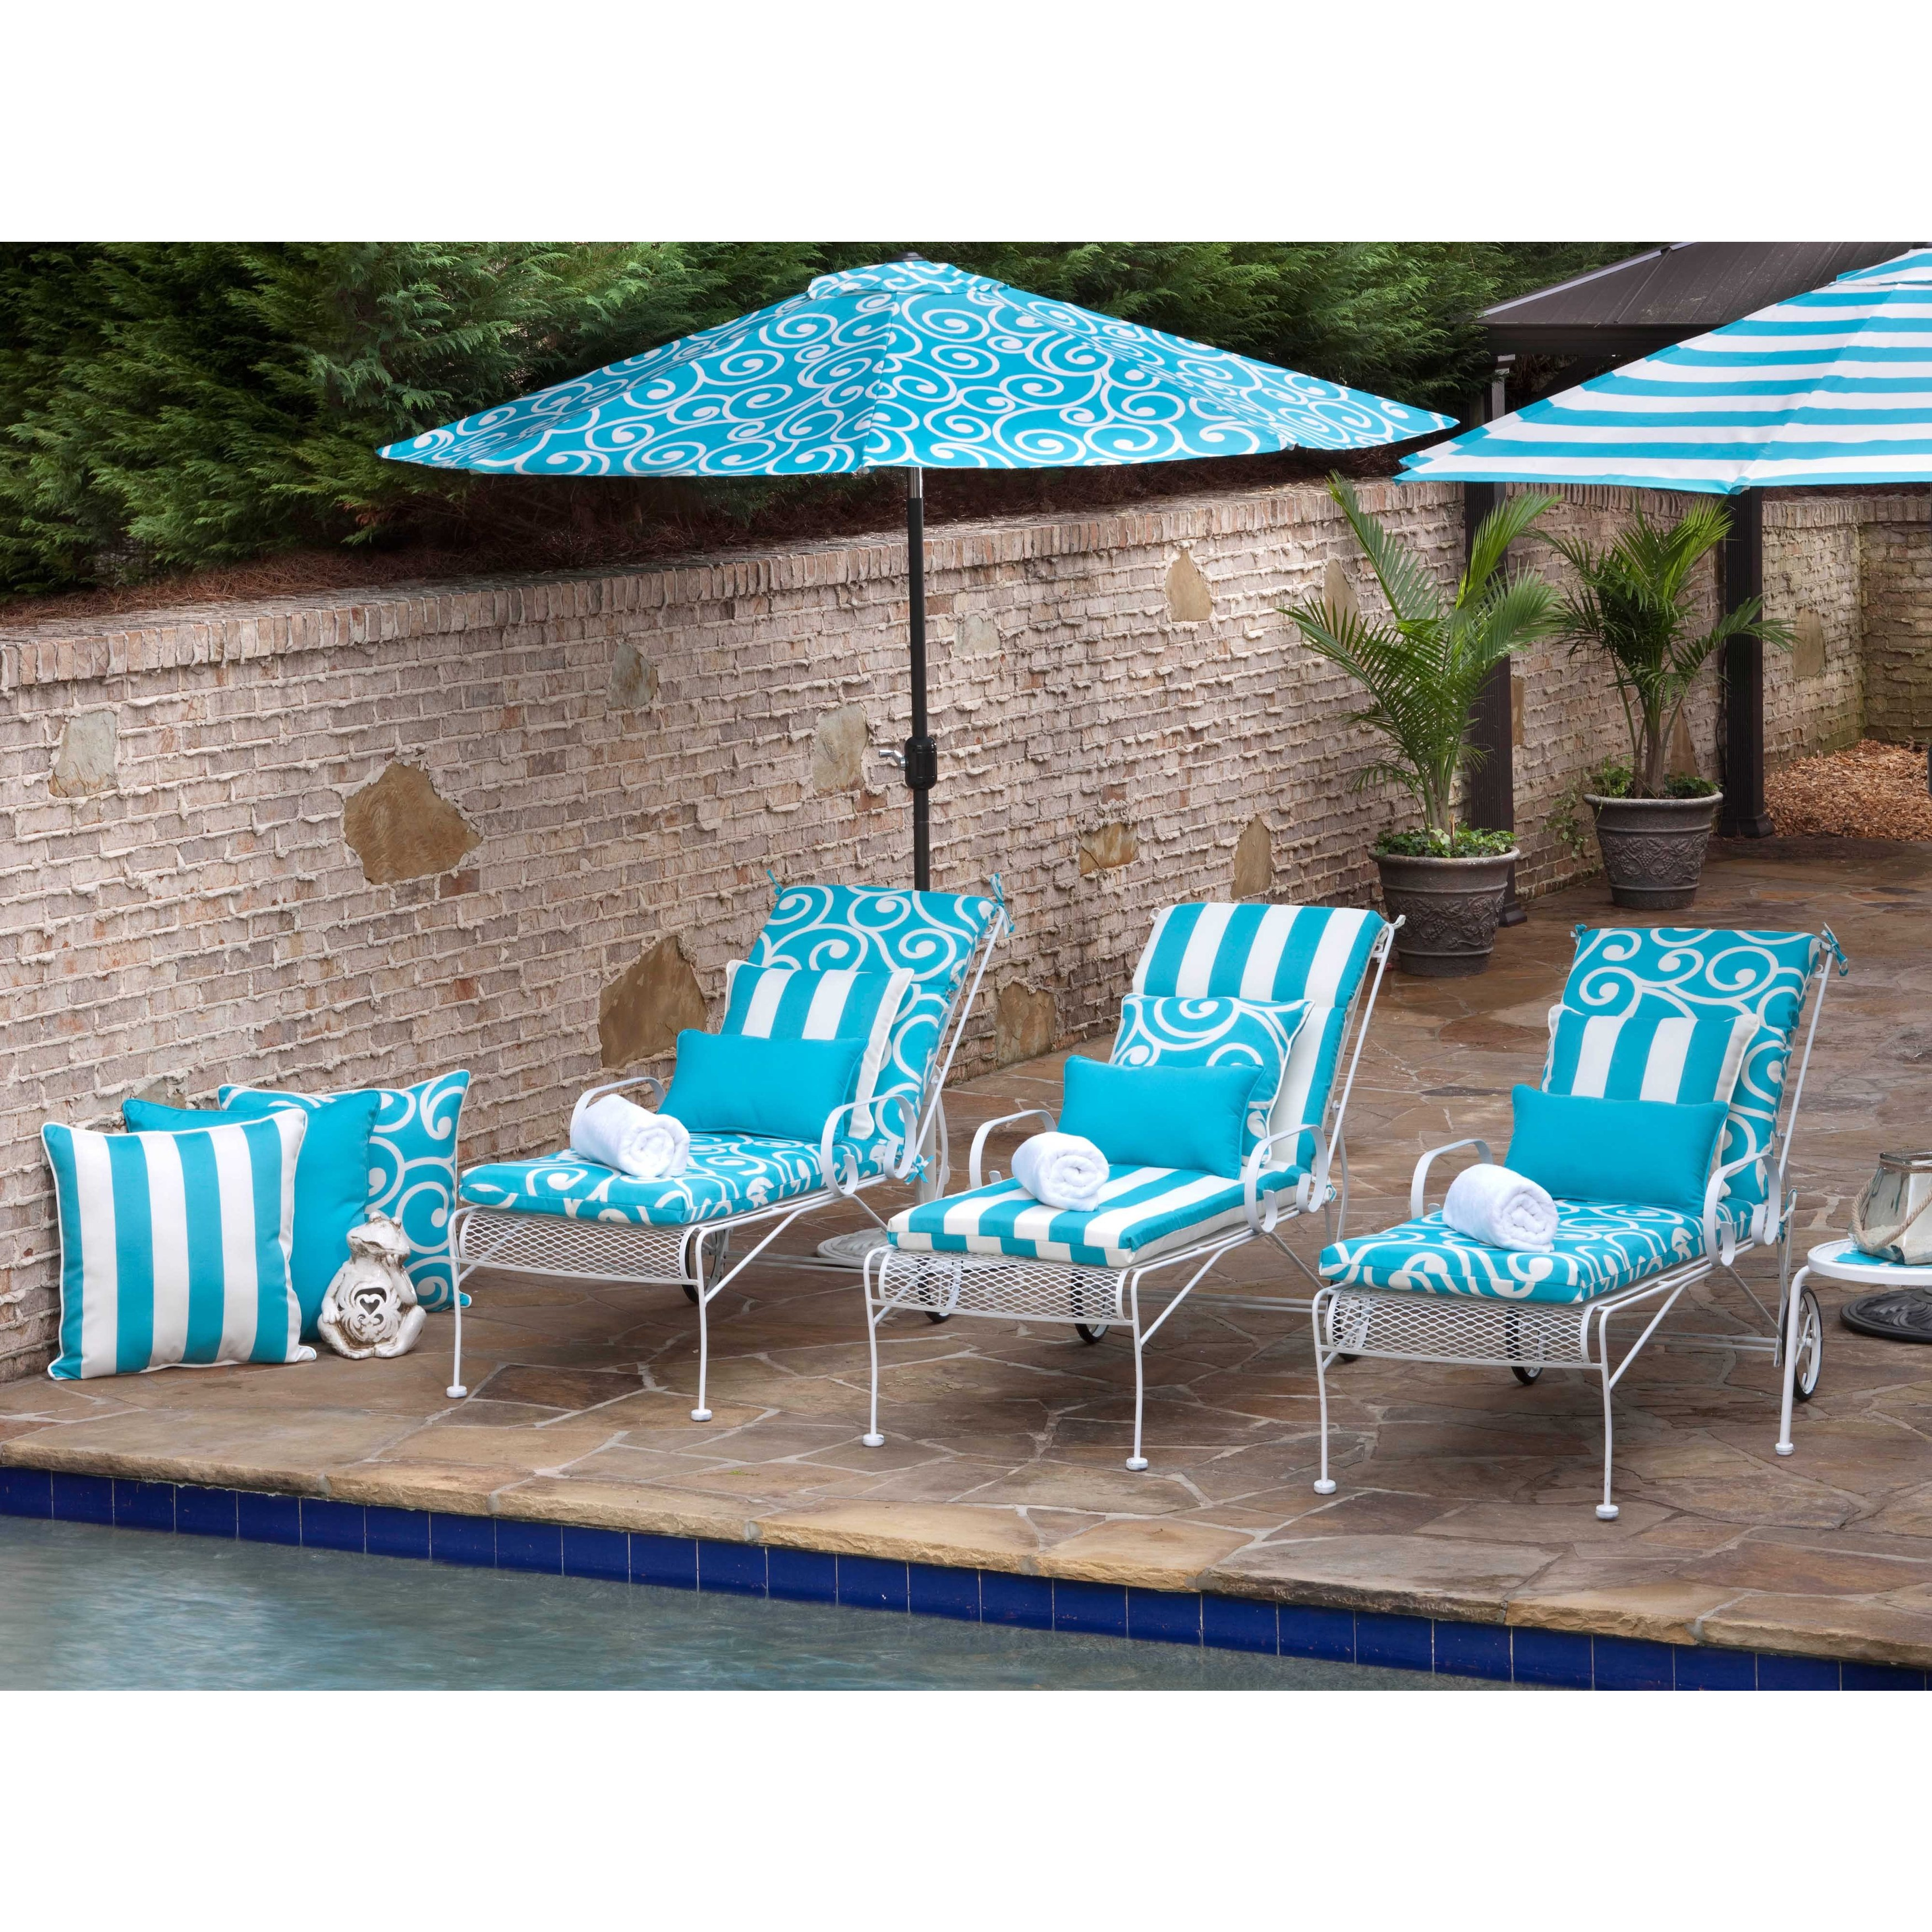 coral for product back high chair cushions cushion turquoise display and furniture wicker reviews ideas bay in patio damask with good hampton incredible